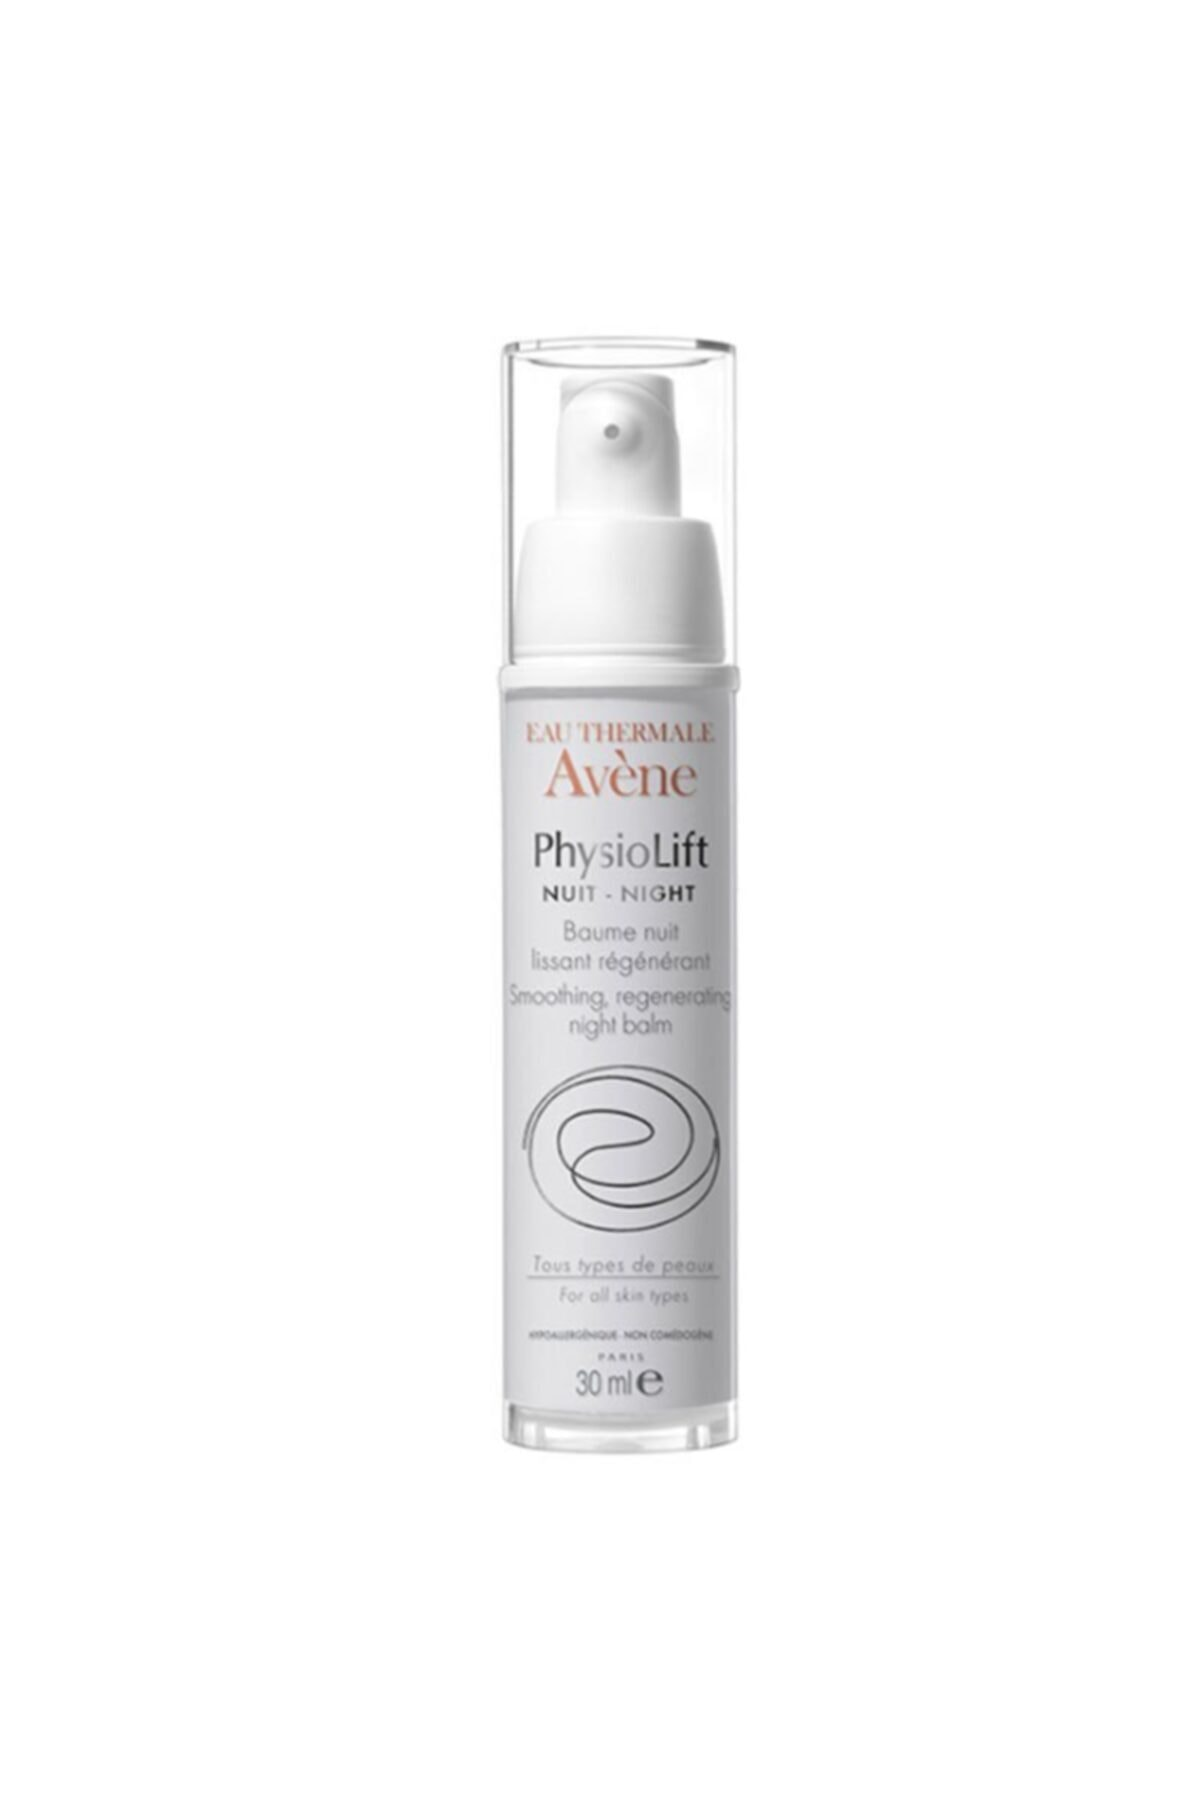 Avene Physiolift Baume Nuit Night 30ml 1